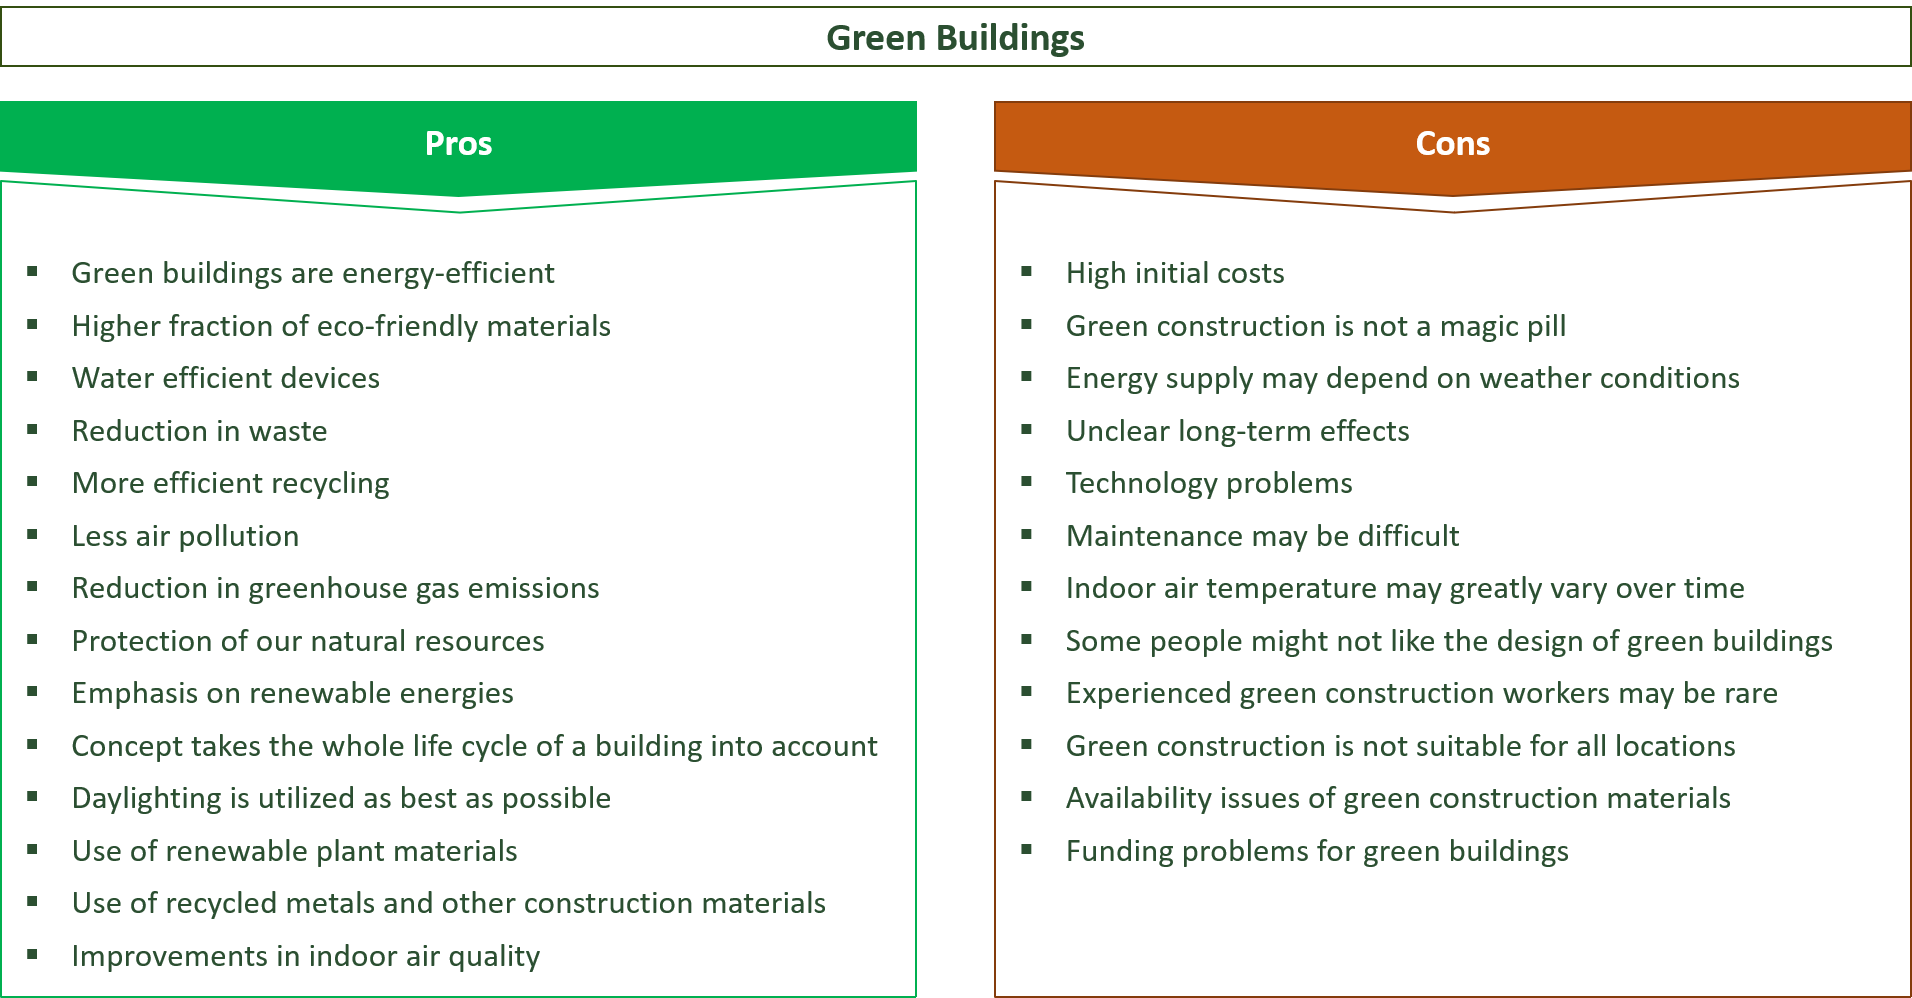 advantages and disadvantages of green buildings and green construction